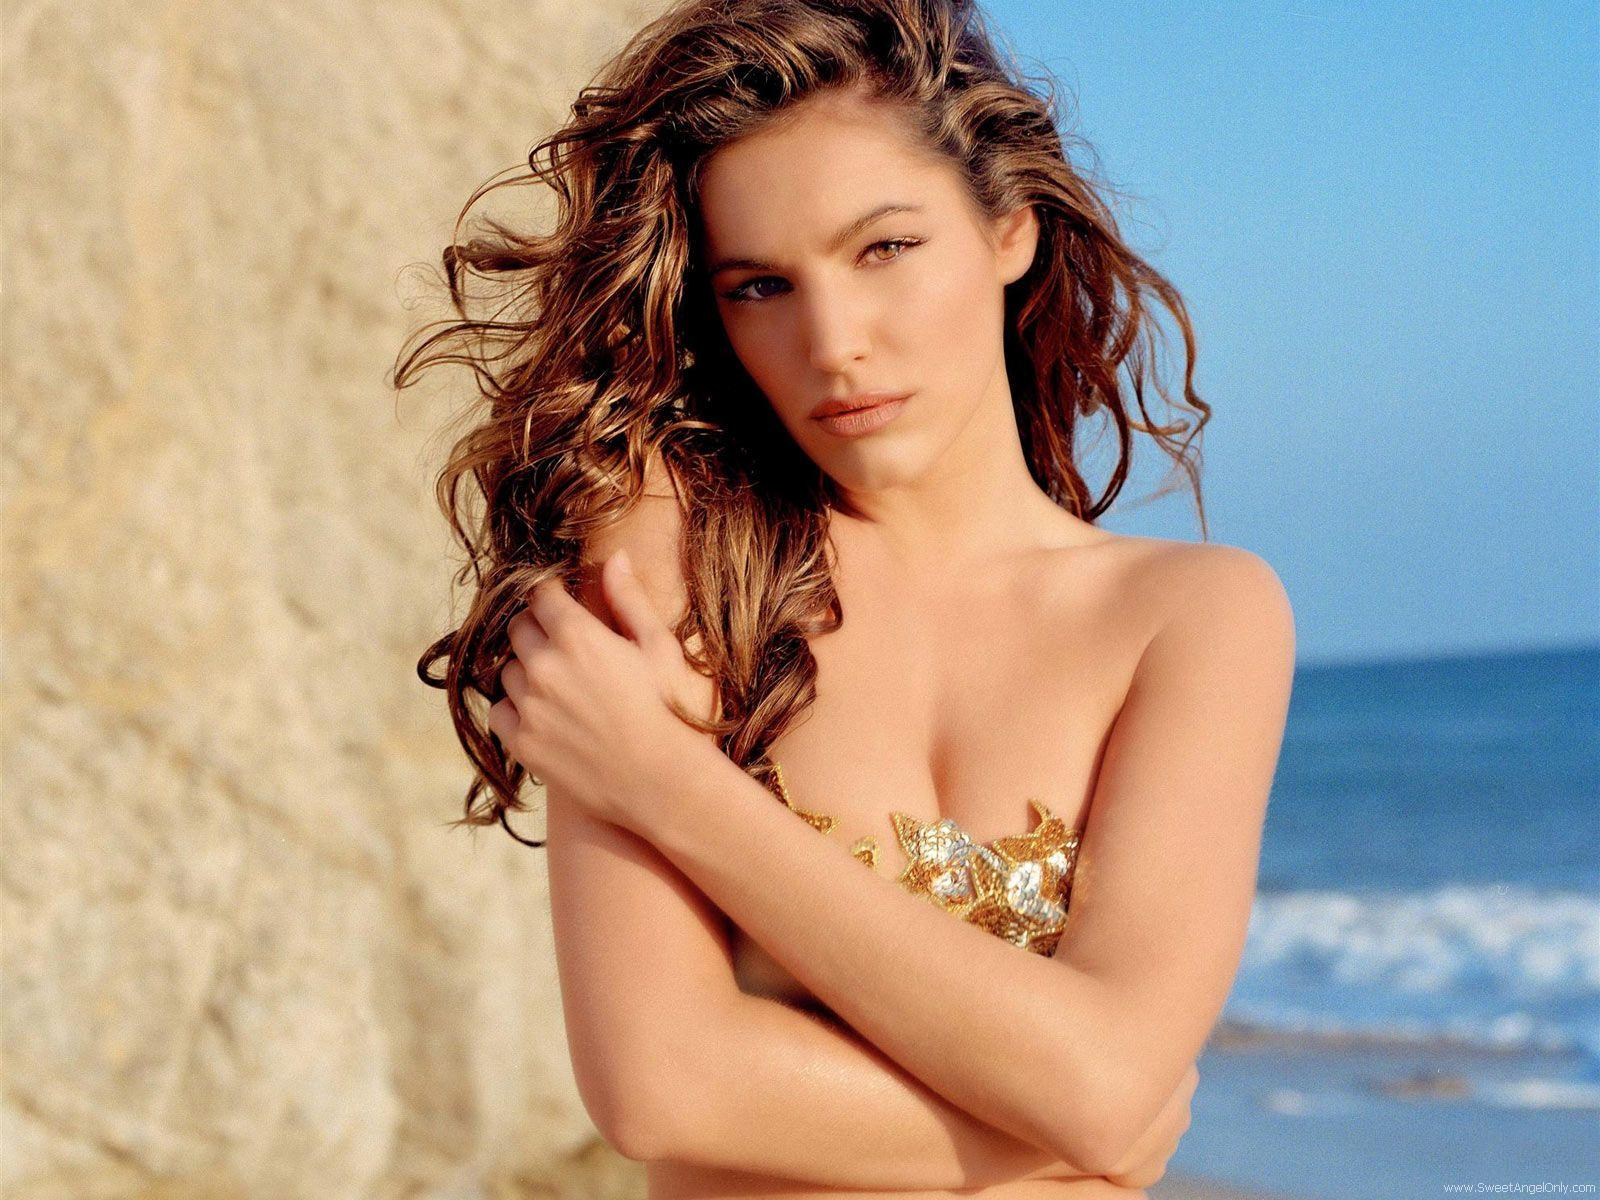 http://2.bp.blogspot.com/-W_e0Sjb_RiY/TeD9BKYH7gI/AAAAAAAAFqg/moDGChVKbvs/s1600/kelly_brook_a_HD_Wallpaper_43.jpg